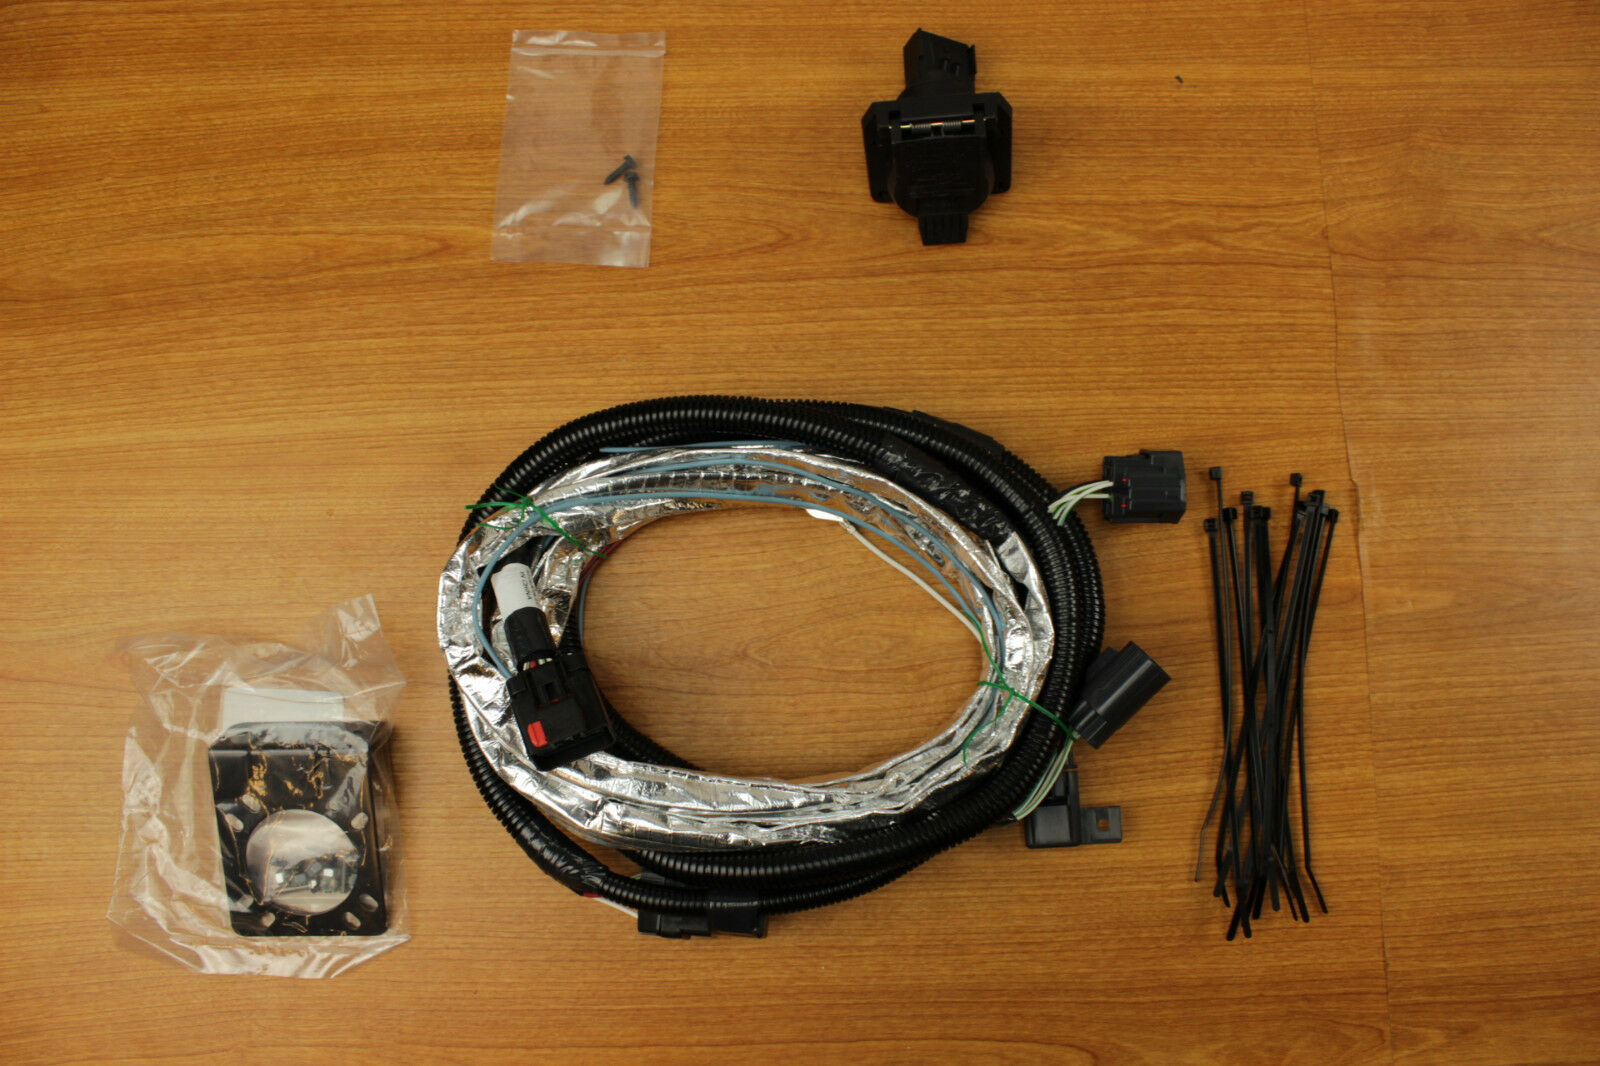 Jeep Jk Flat Tow Wiring Harness : Jeep wrangler jk way trailer tow hitch wiring